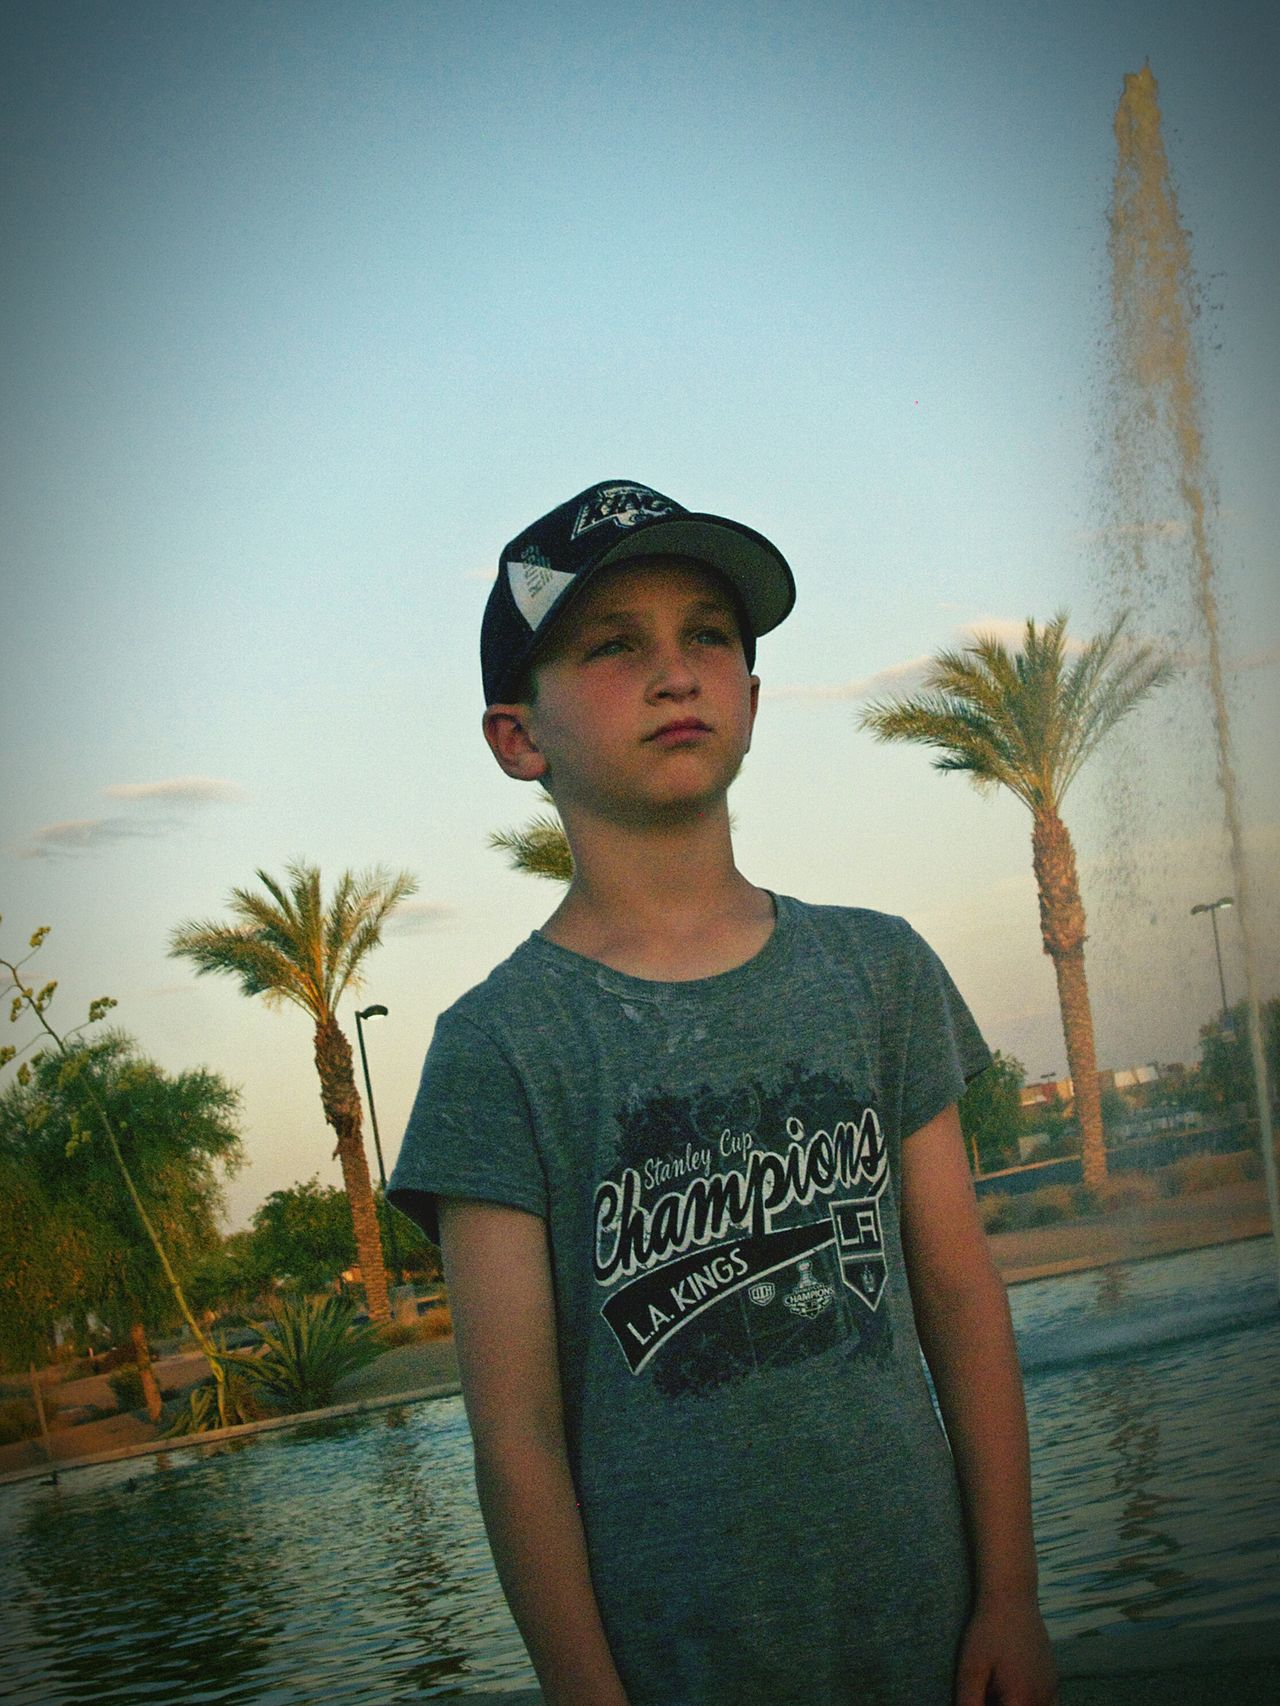 Young Boy Fountains Seriousface Standing Tall Dusky Sky My Son ❤ Glendale, Arizona